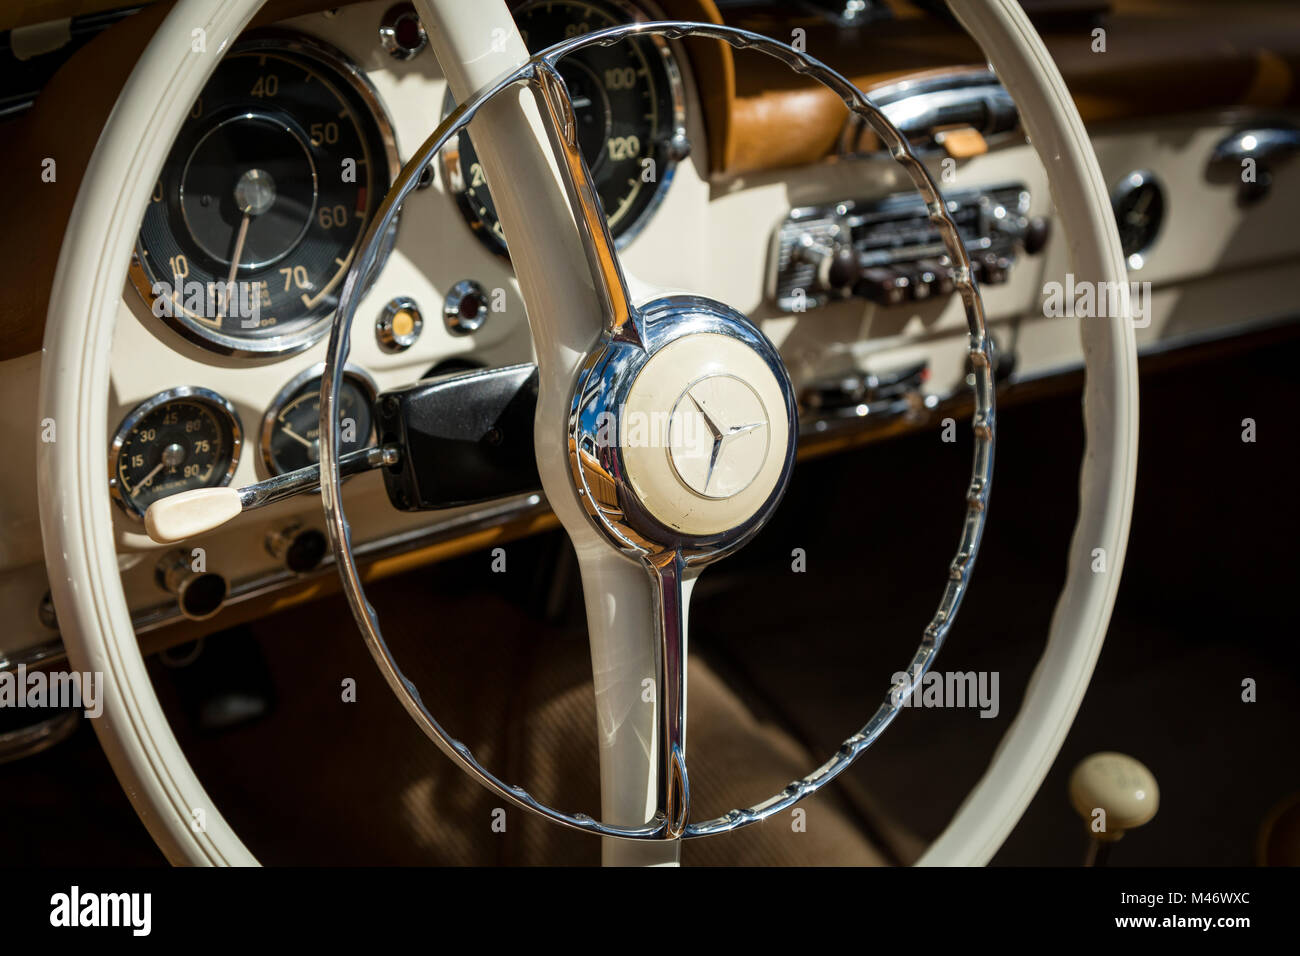 Steering wheel and dash of 1959 Mercedes Benz 190SL Convertible on display at 'Cars on 5th' autoshow, Naples, - Stock Image